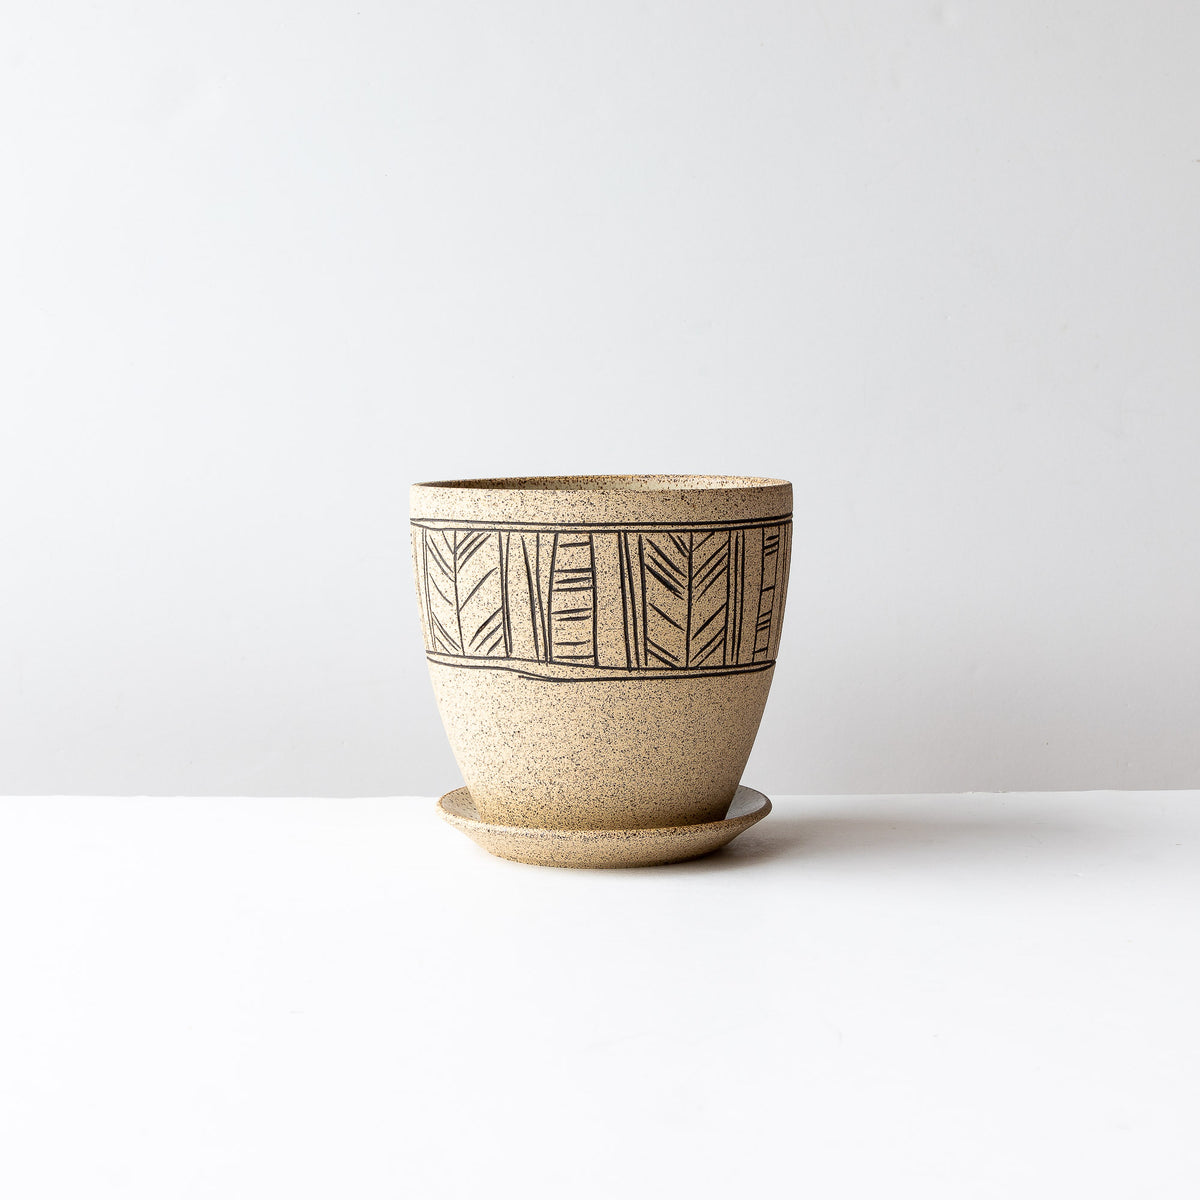 Line Pattern - Handmade Mishima Stoneware Plant Pot With Saucer - Sold by Chic & Basta